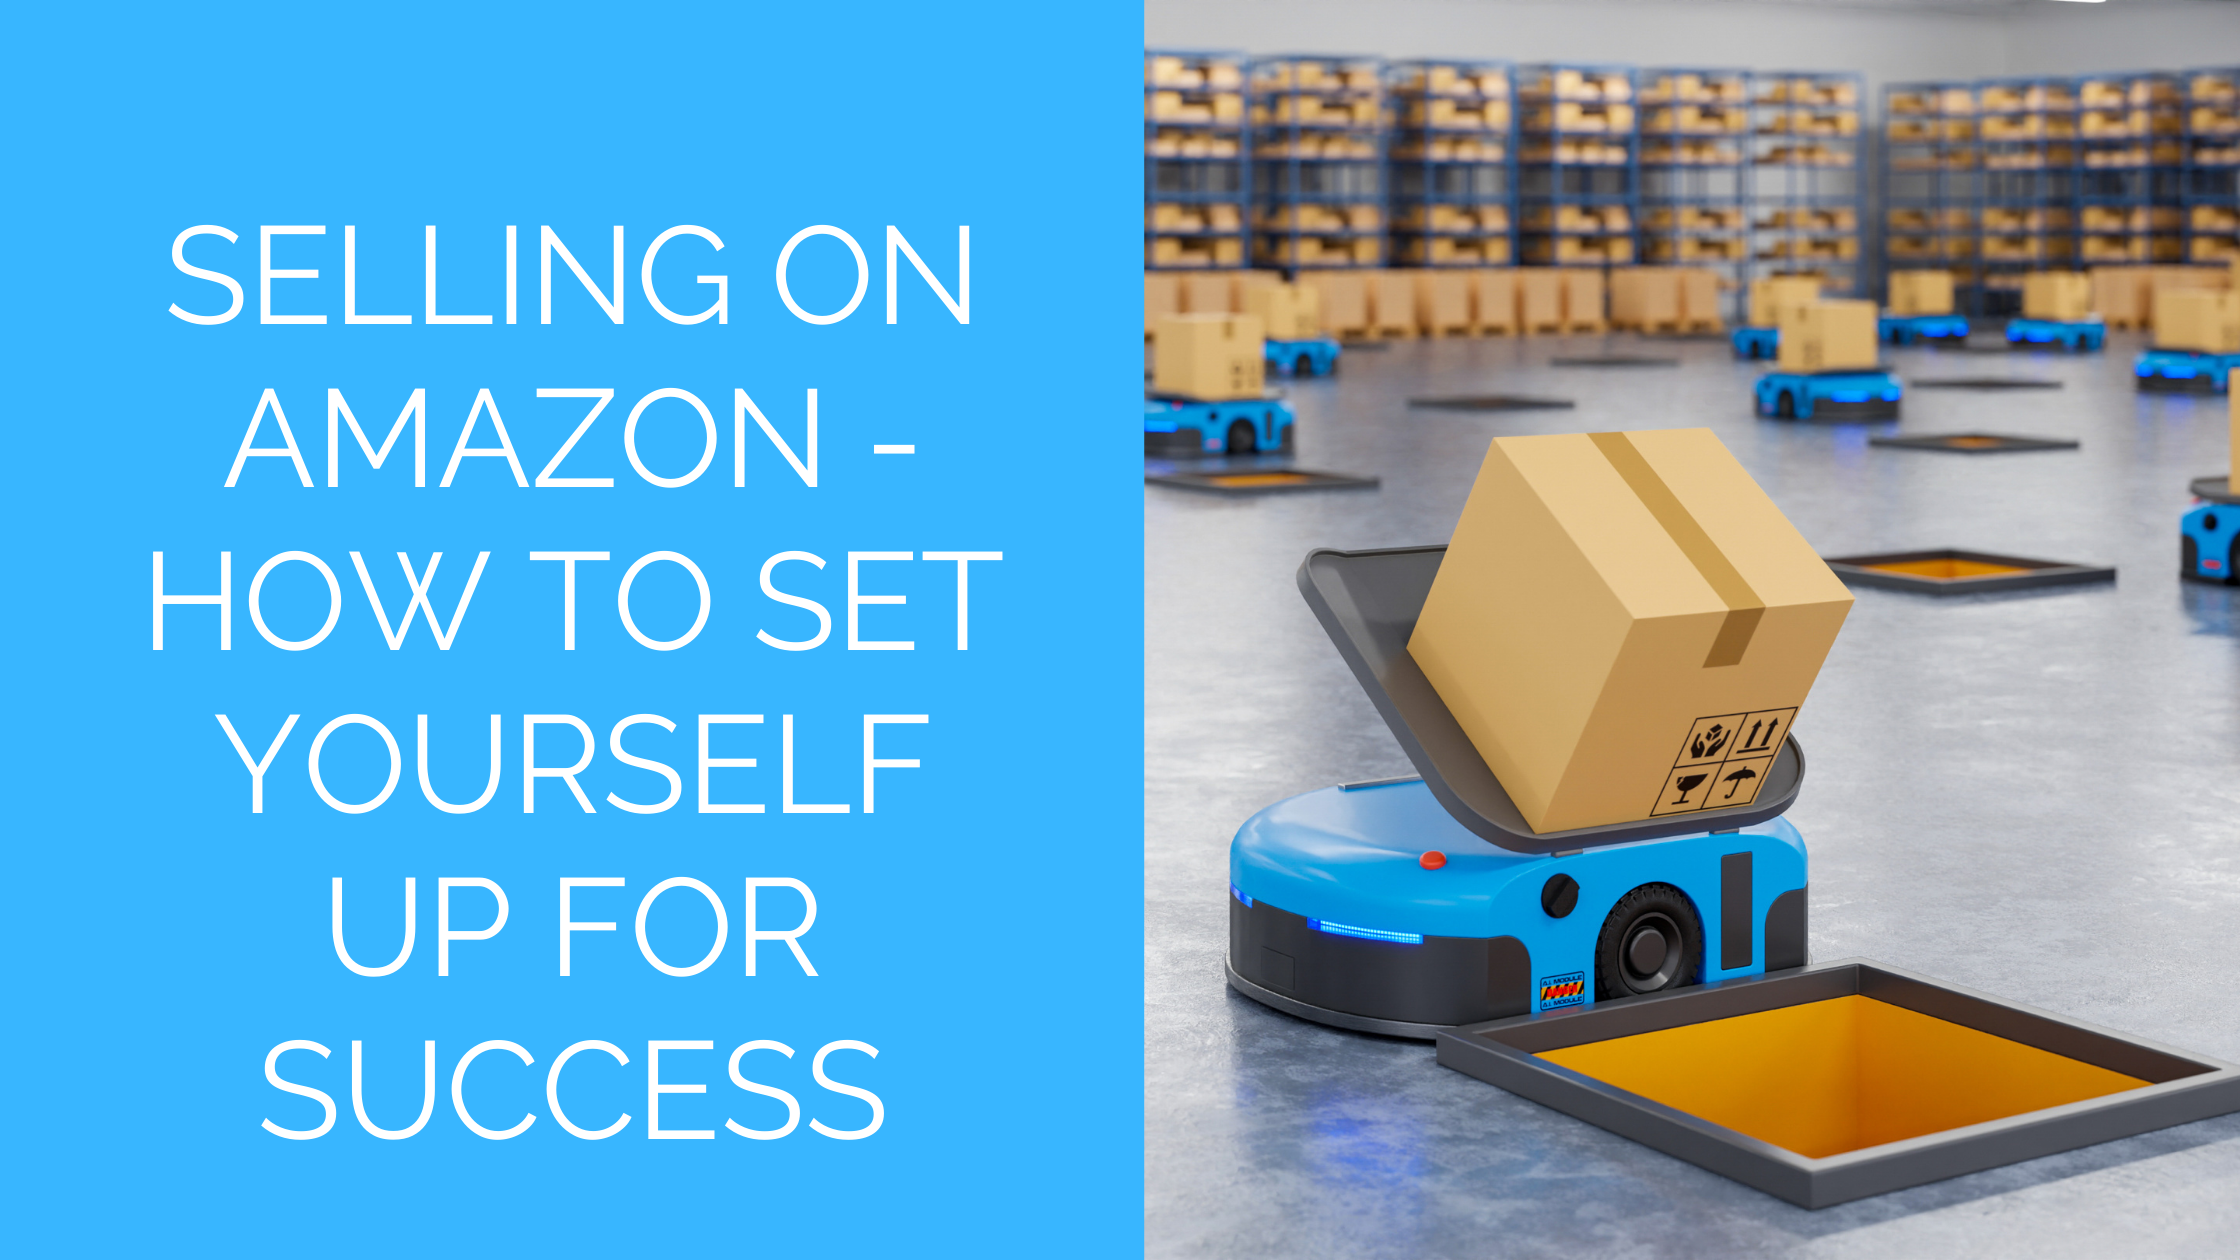 Selling on Amazon – how to set yourself up for success